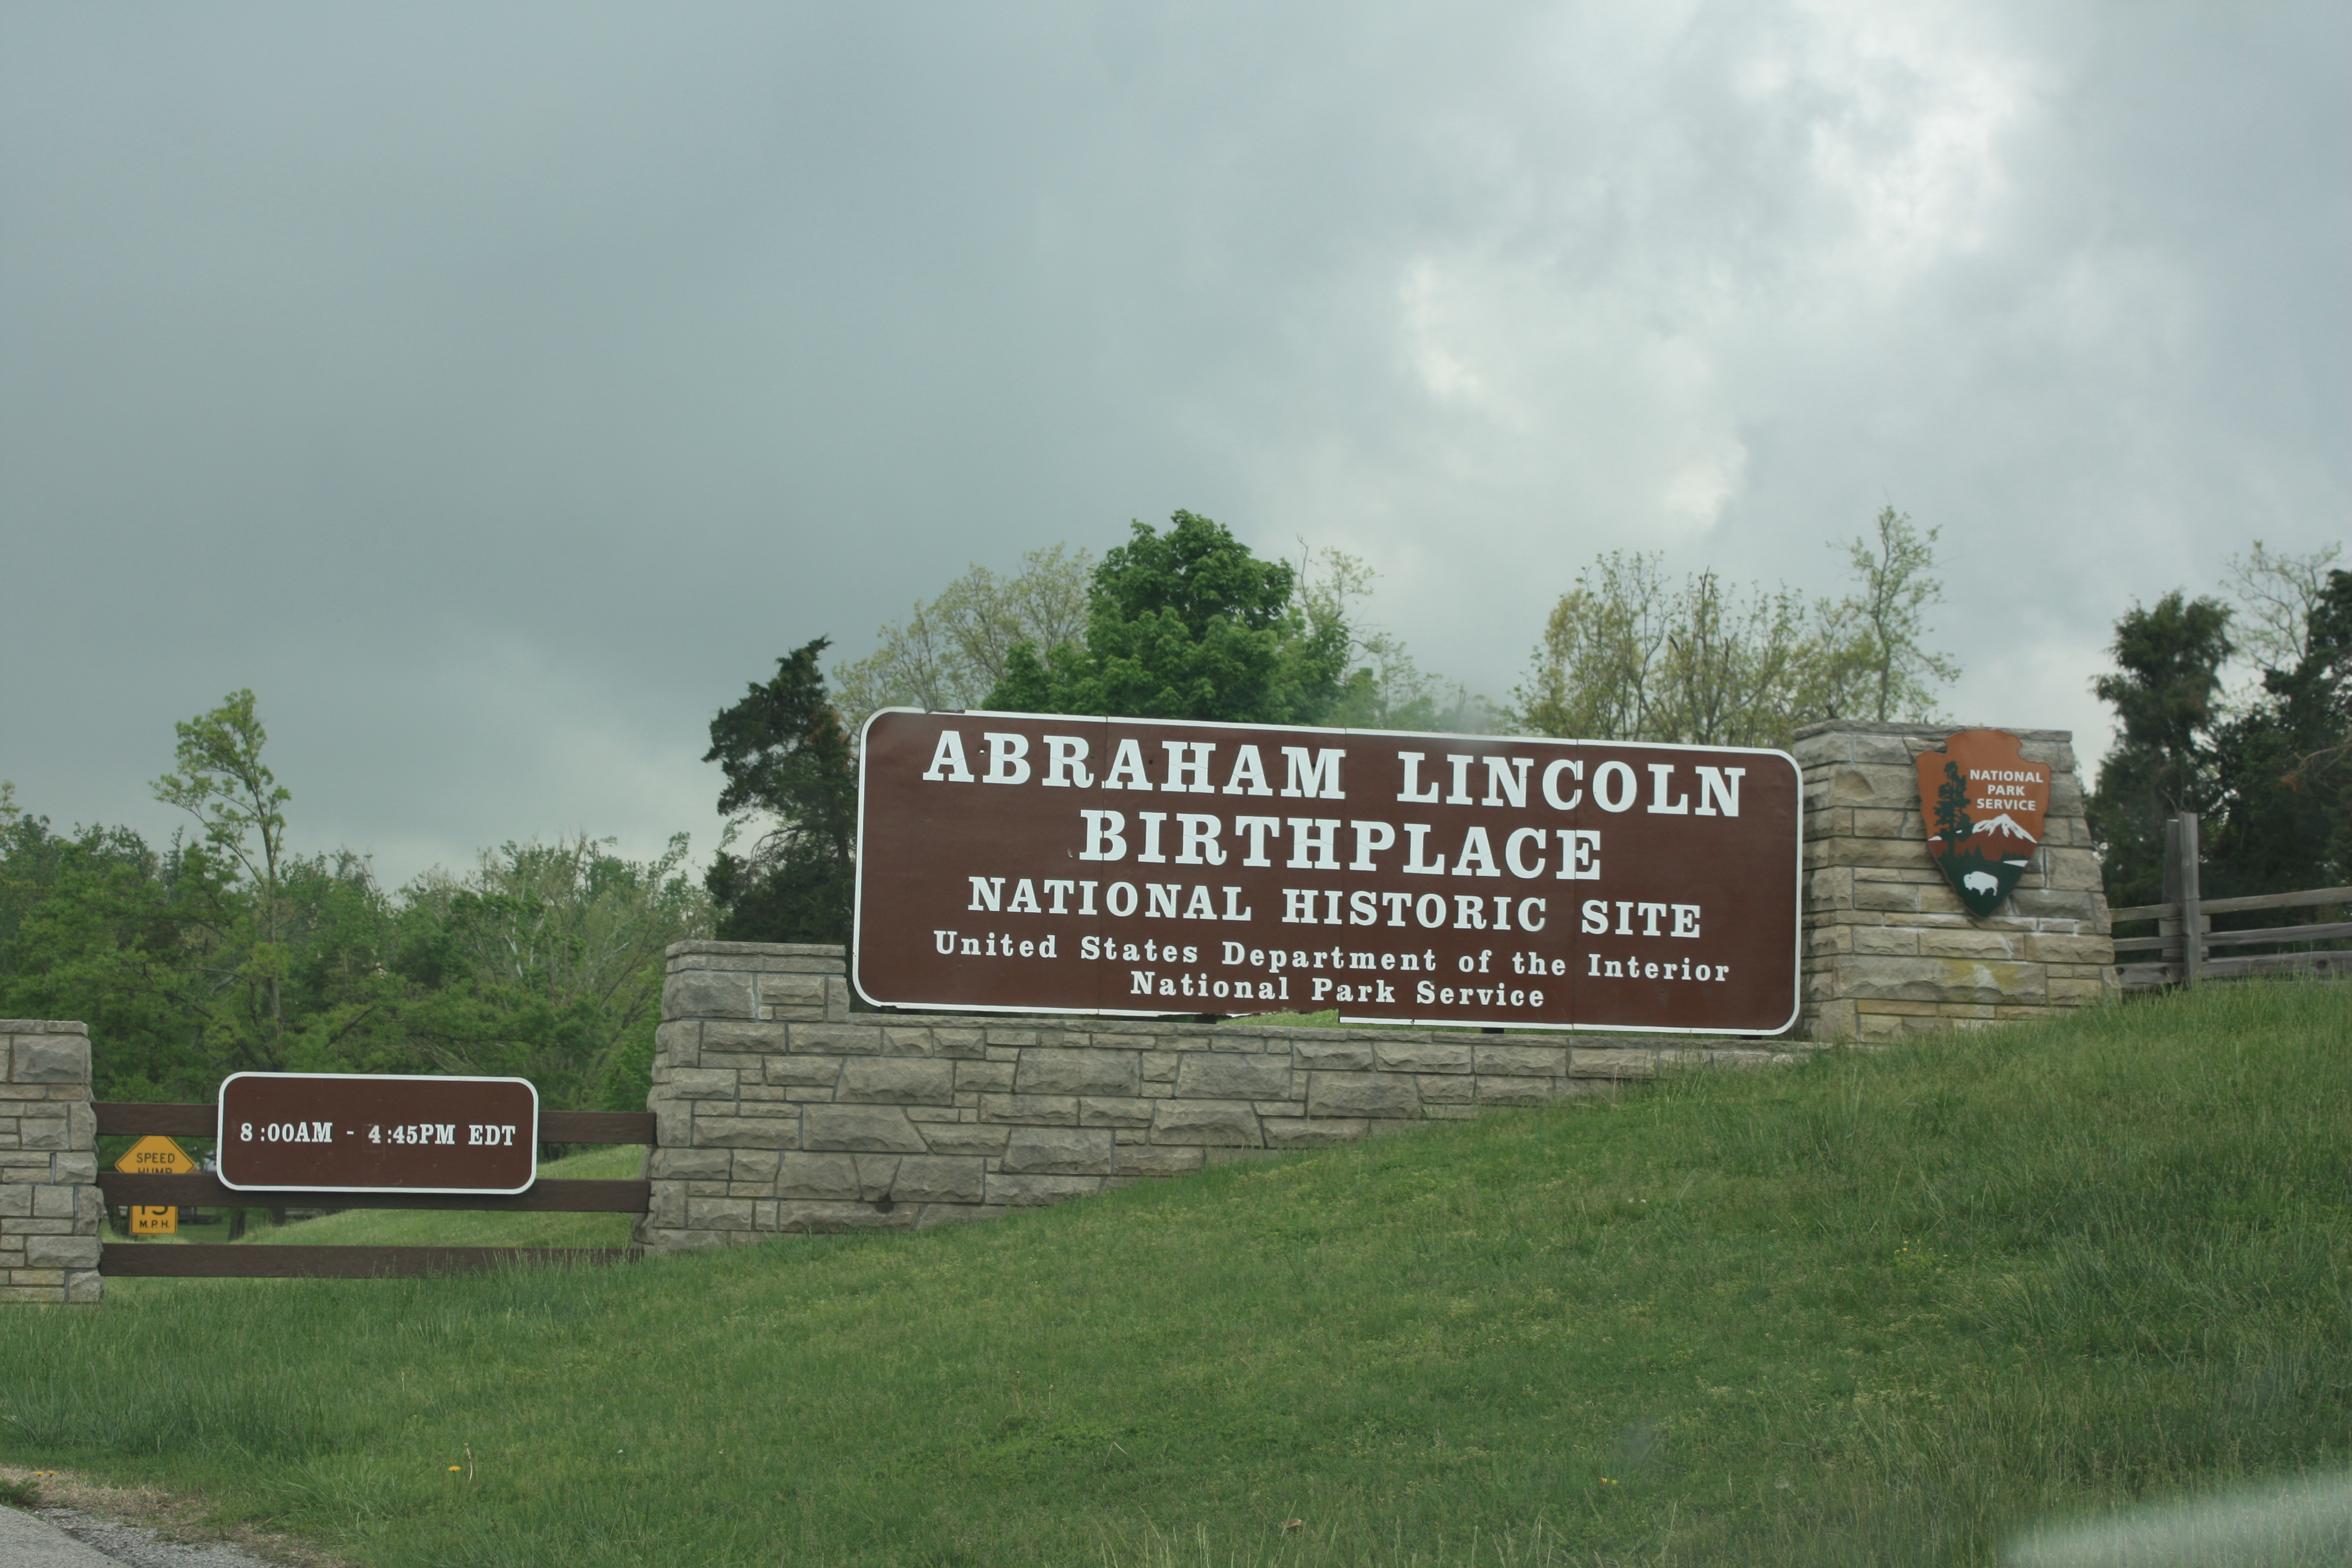 Abe Lincoln's Birthplace